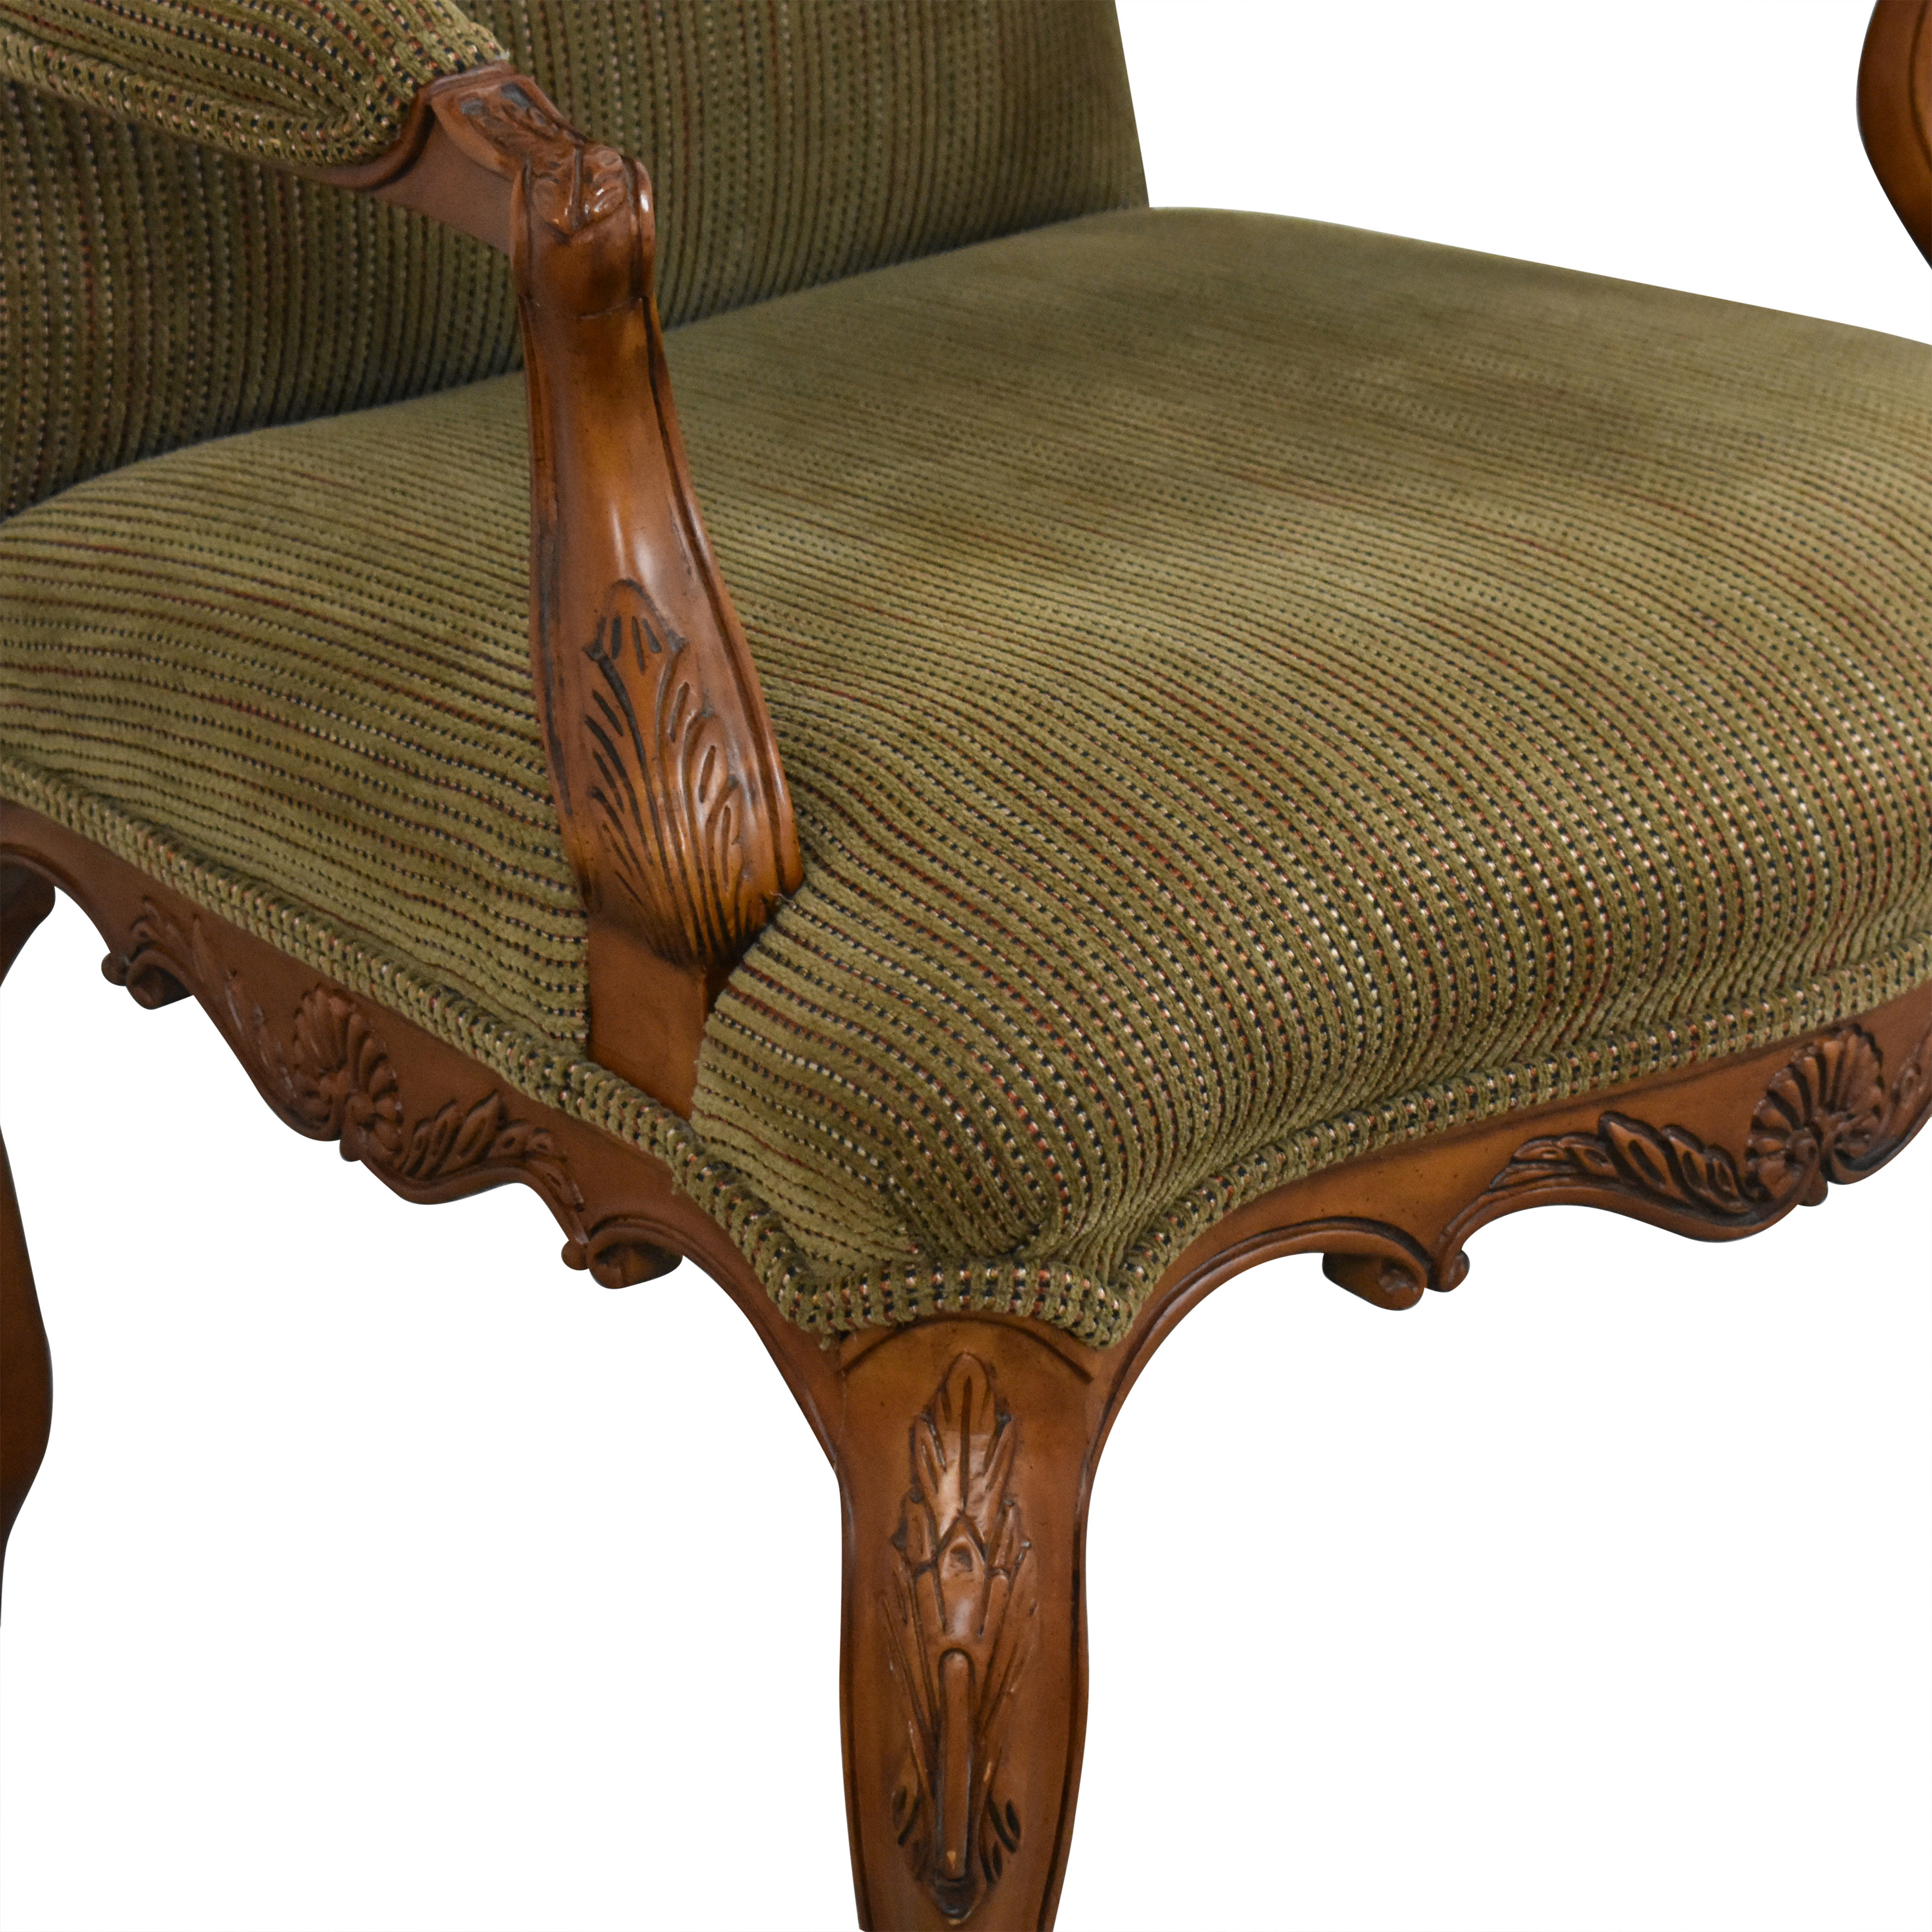 Drexel Heritage Drexel Heritage Accent Chair dimensions